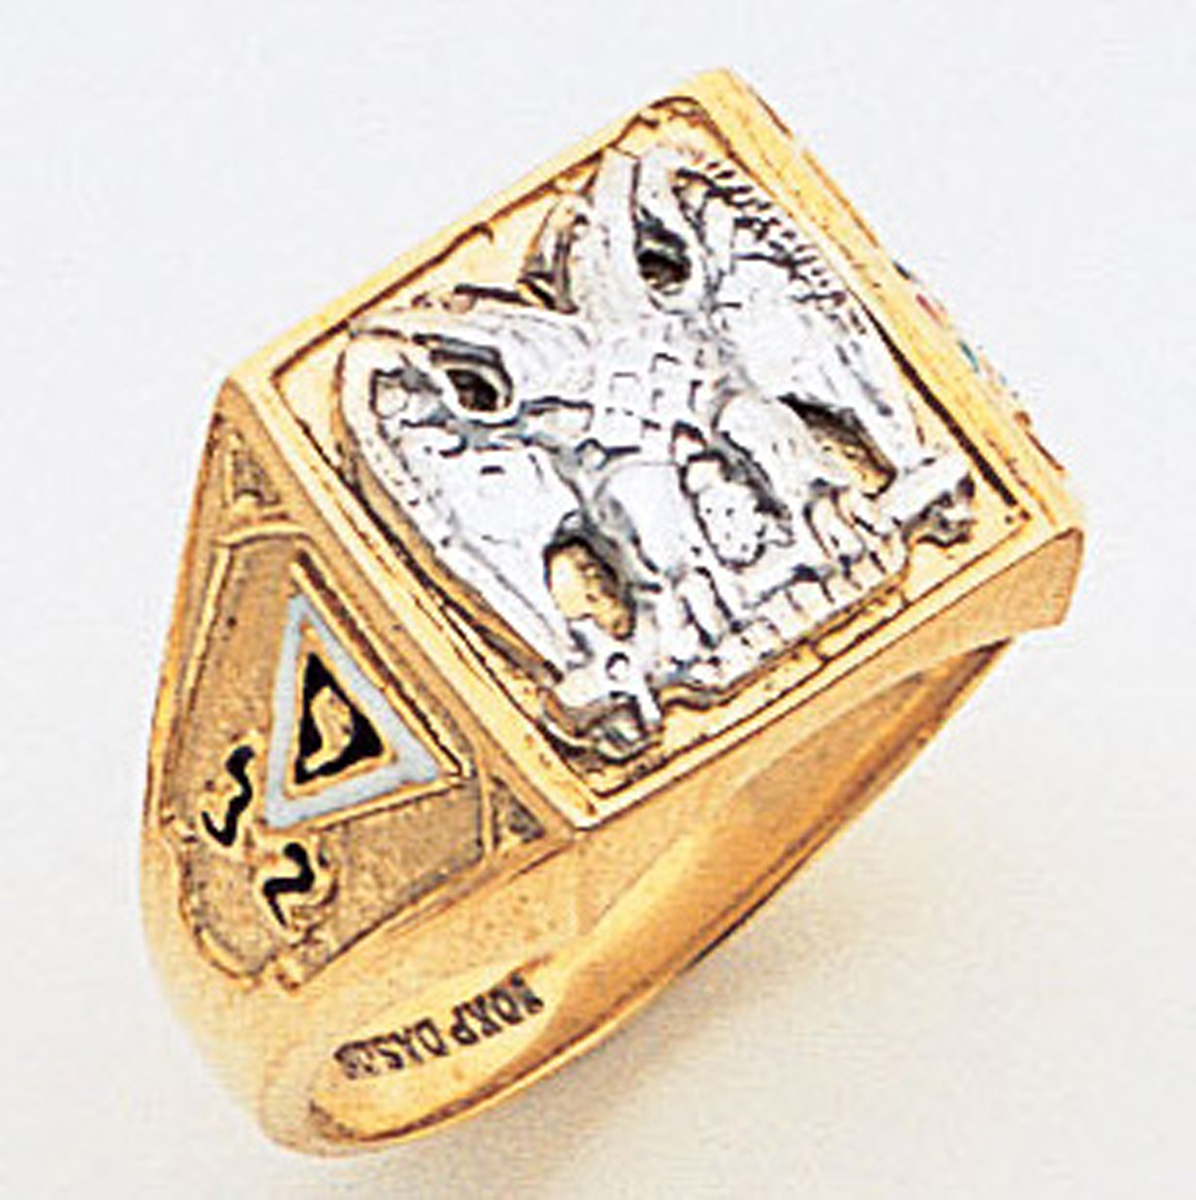 Masonic 32 Degree Scottish Rite Ring Macoy Publishing Masonic Supply 5199